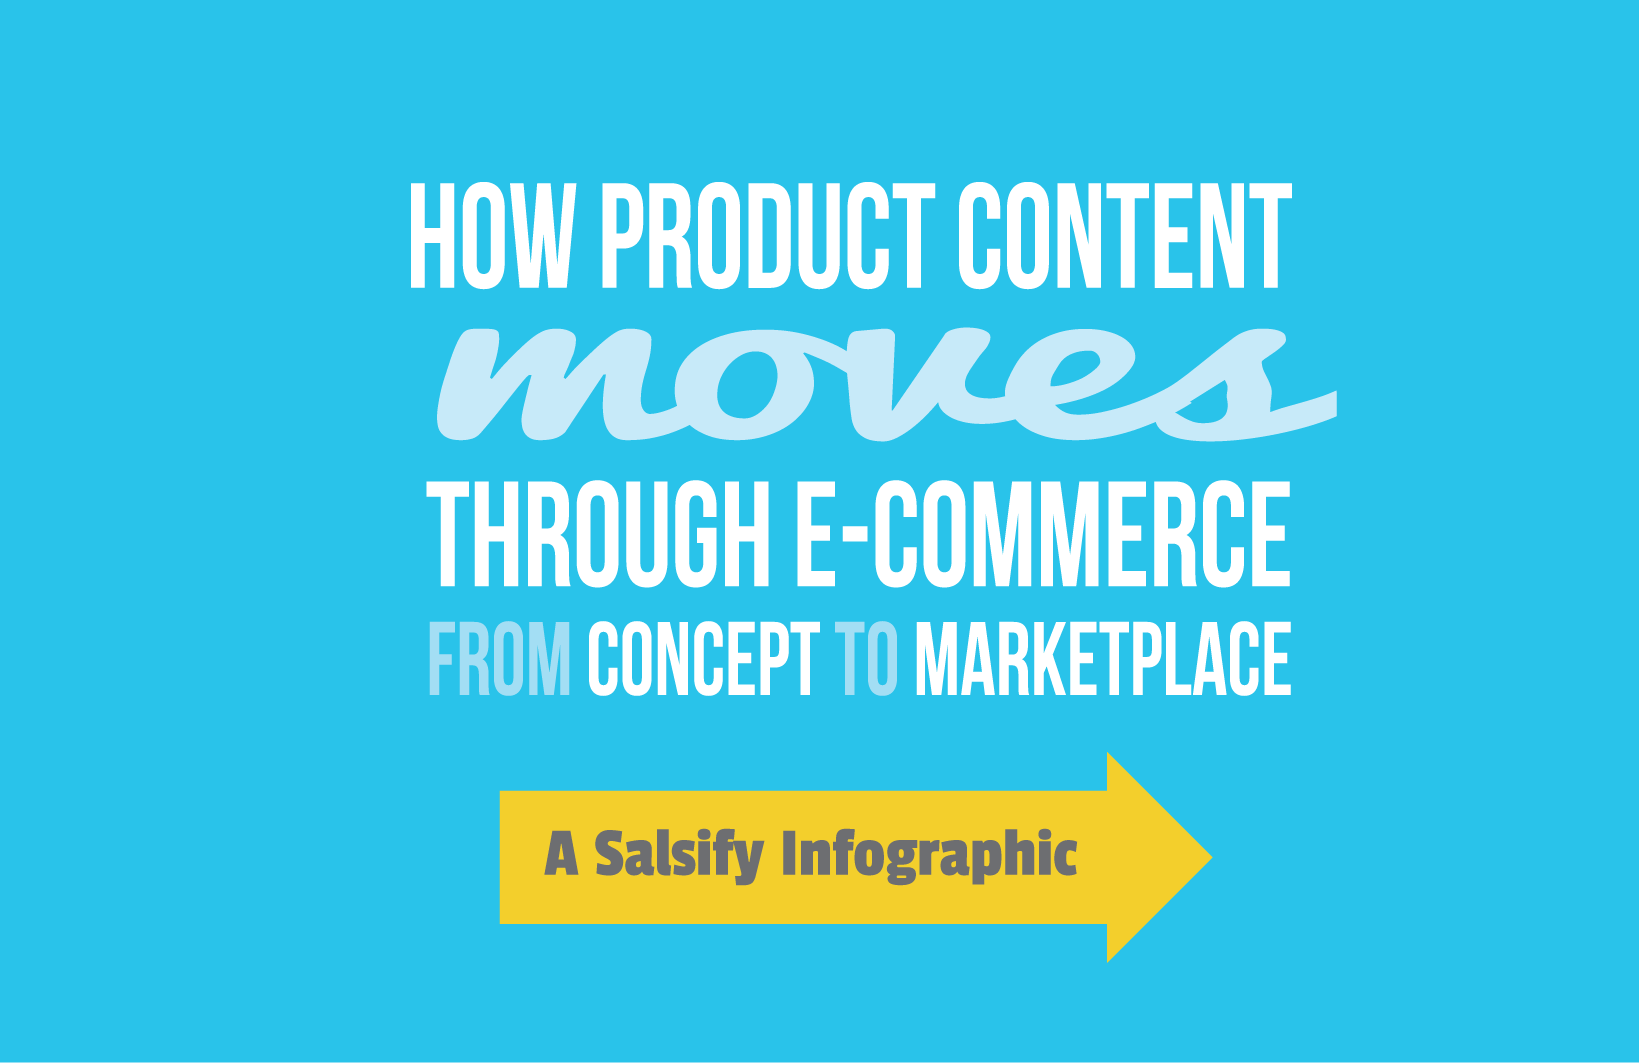 Hubspot_How_Product_Content_Moves_Featured_Image-01